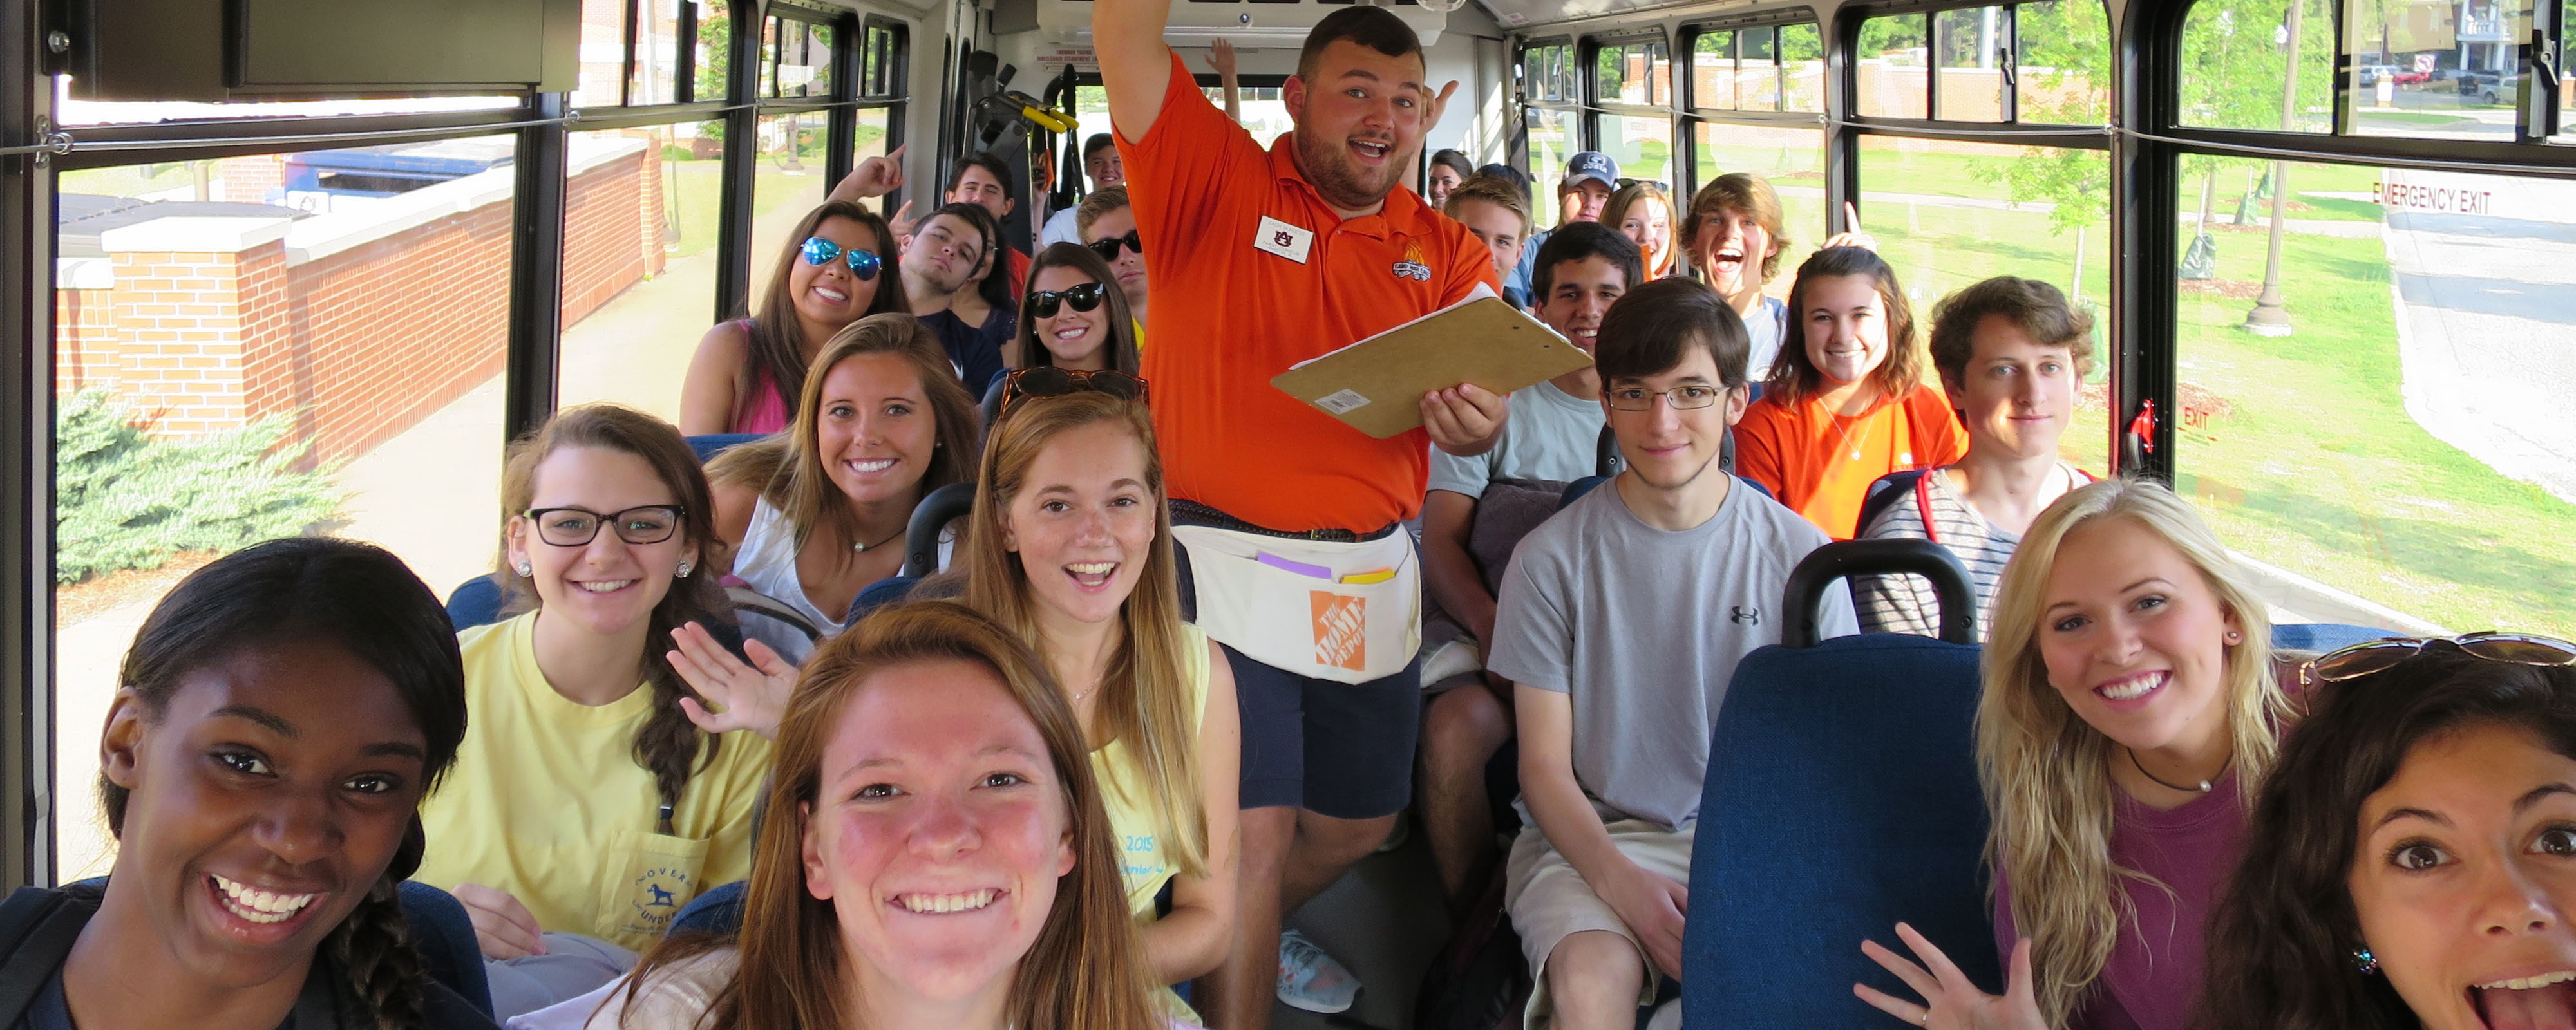 Counselor riding bus with students to check in